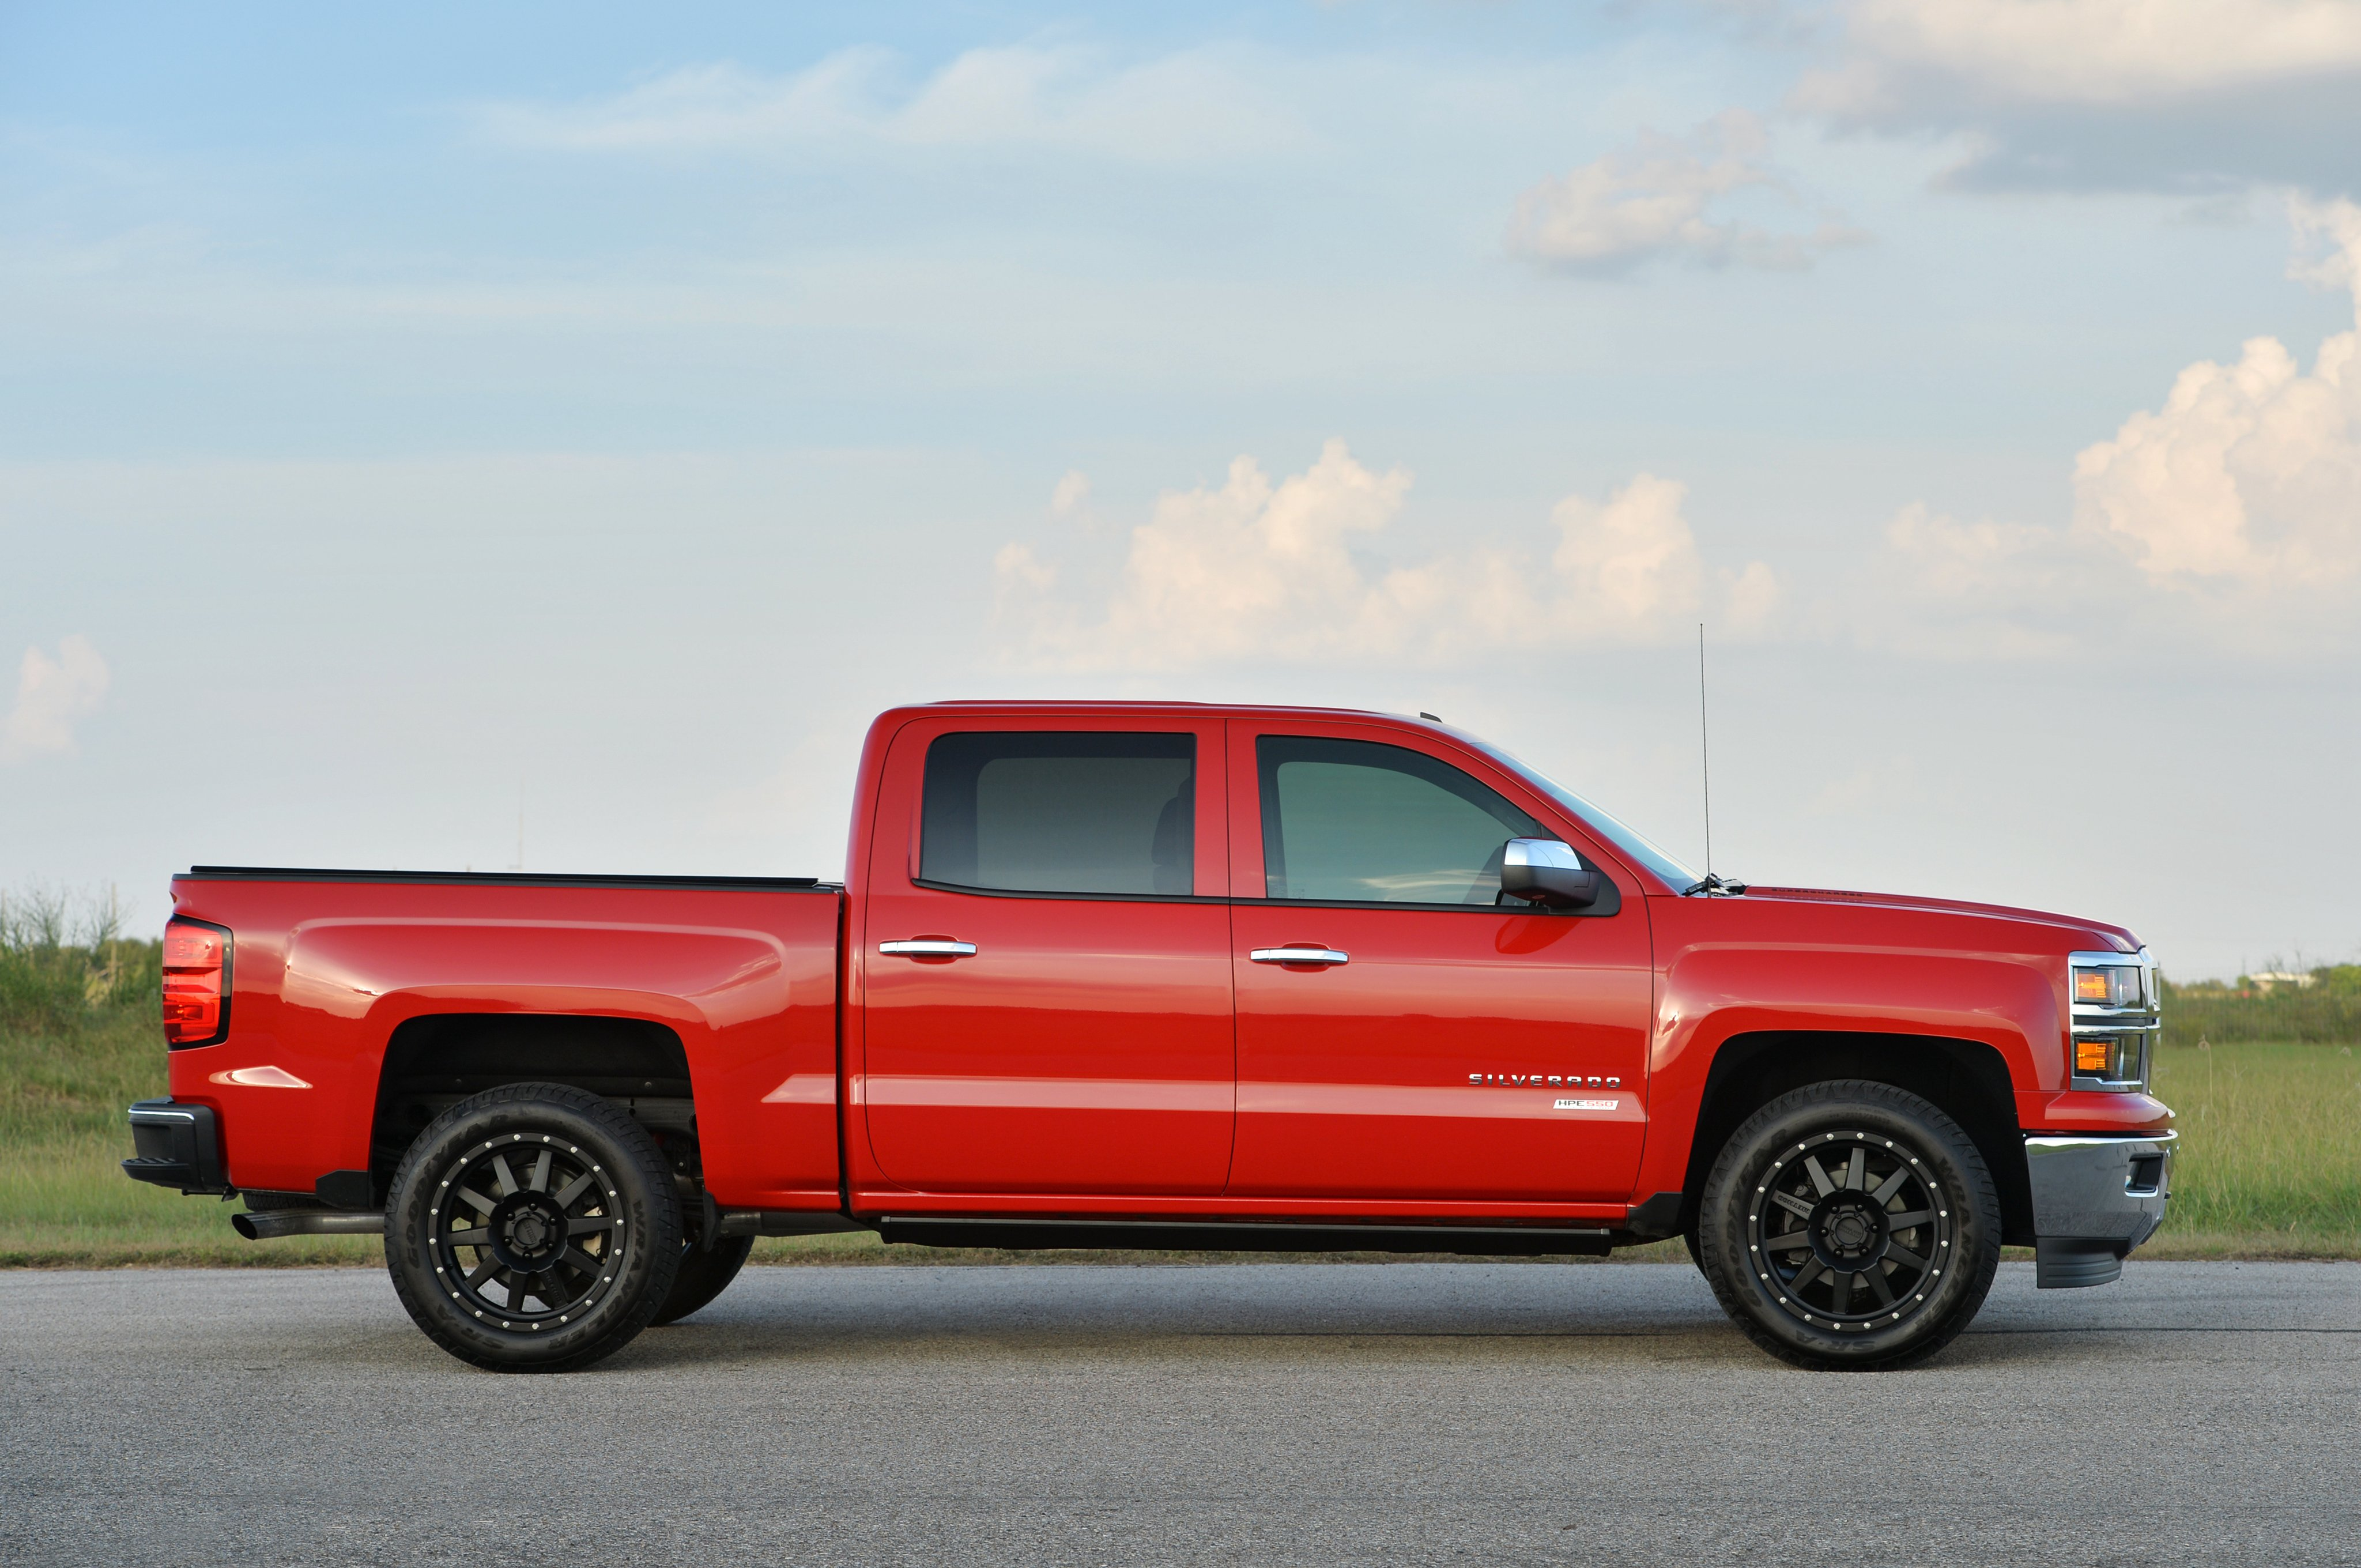 2015 hennessey chevrolet silverado z71 hpe550 pickup muscle tuning wallpaper 4096x2720 461866 wallpaperup